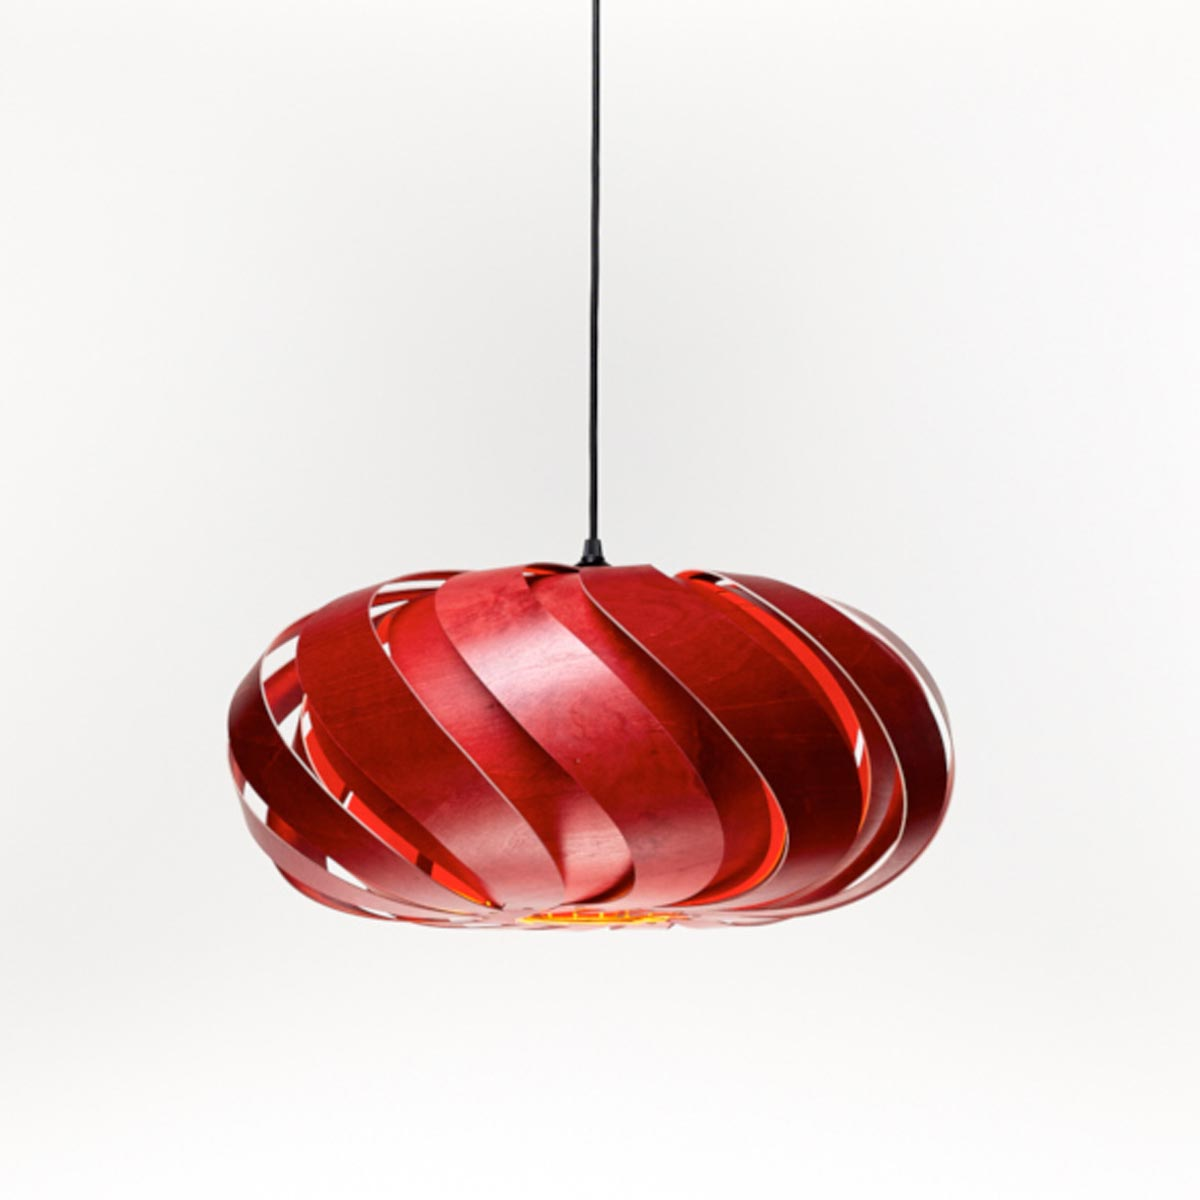 The Eclipse Is A Stunning Handcrafted Wooden Ceiling Light That Uses  Reflection To Give An Effective Distribution Of Light Which Highlights The  Grain Of The ...